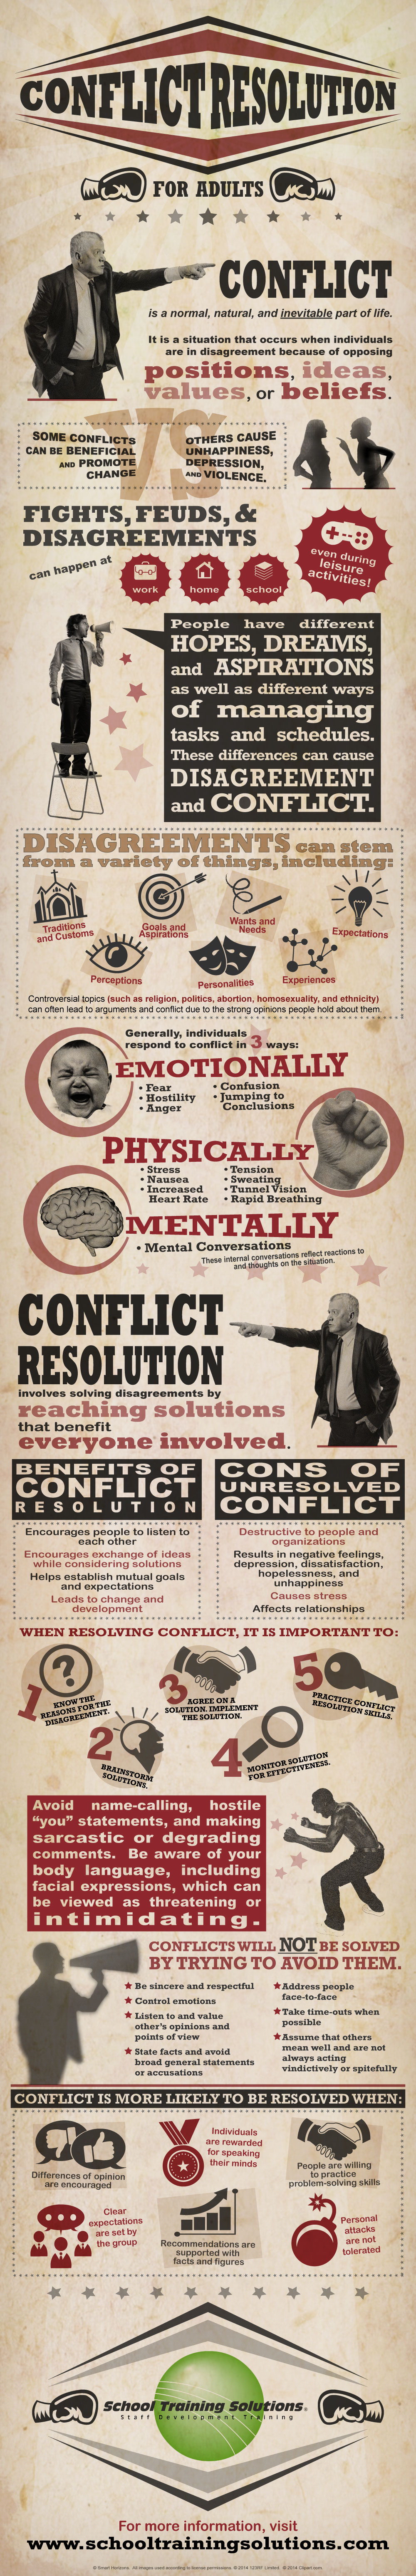 conflict_resolutions_infographic